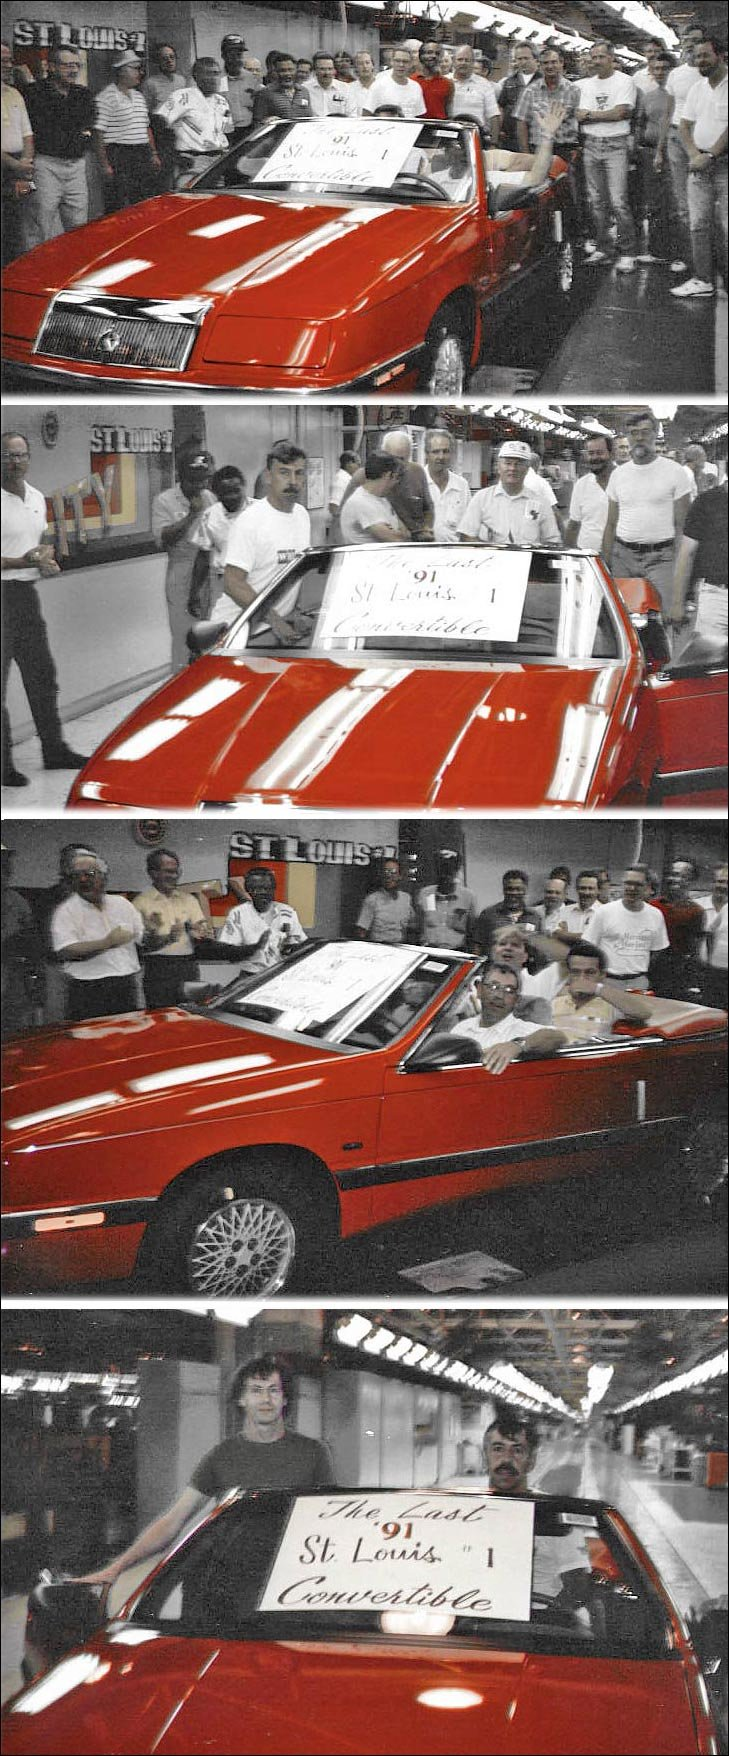 Driving the last Chrysler LeBaron convertible off the St. Louis assembly line